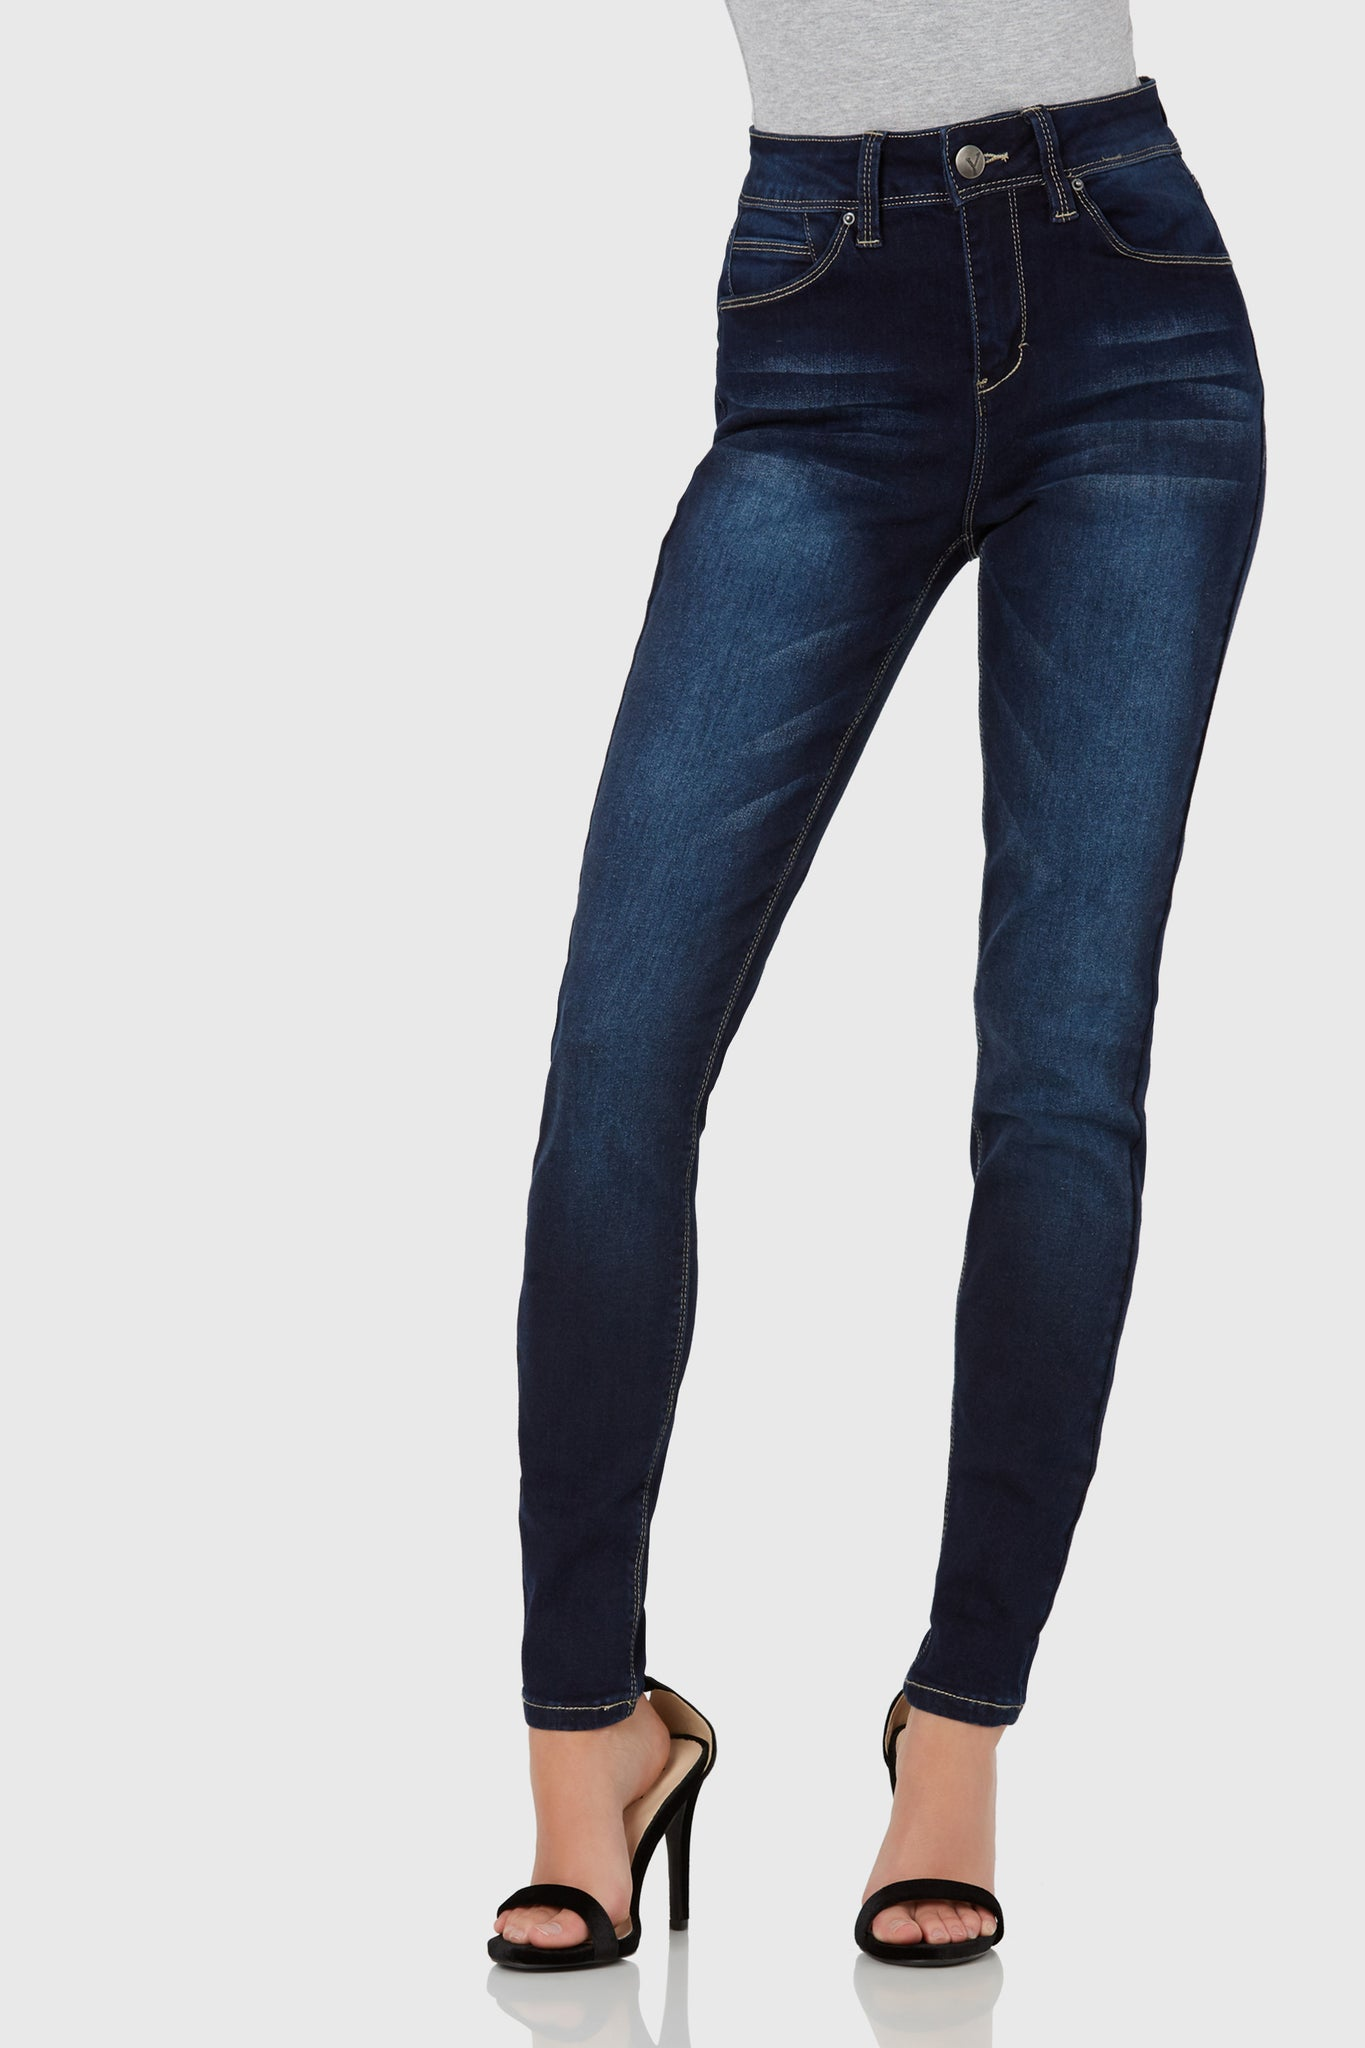 Super stretchy high rise skinnies with amazing fit and flexibility. Deep wash with front button and zip closure.